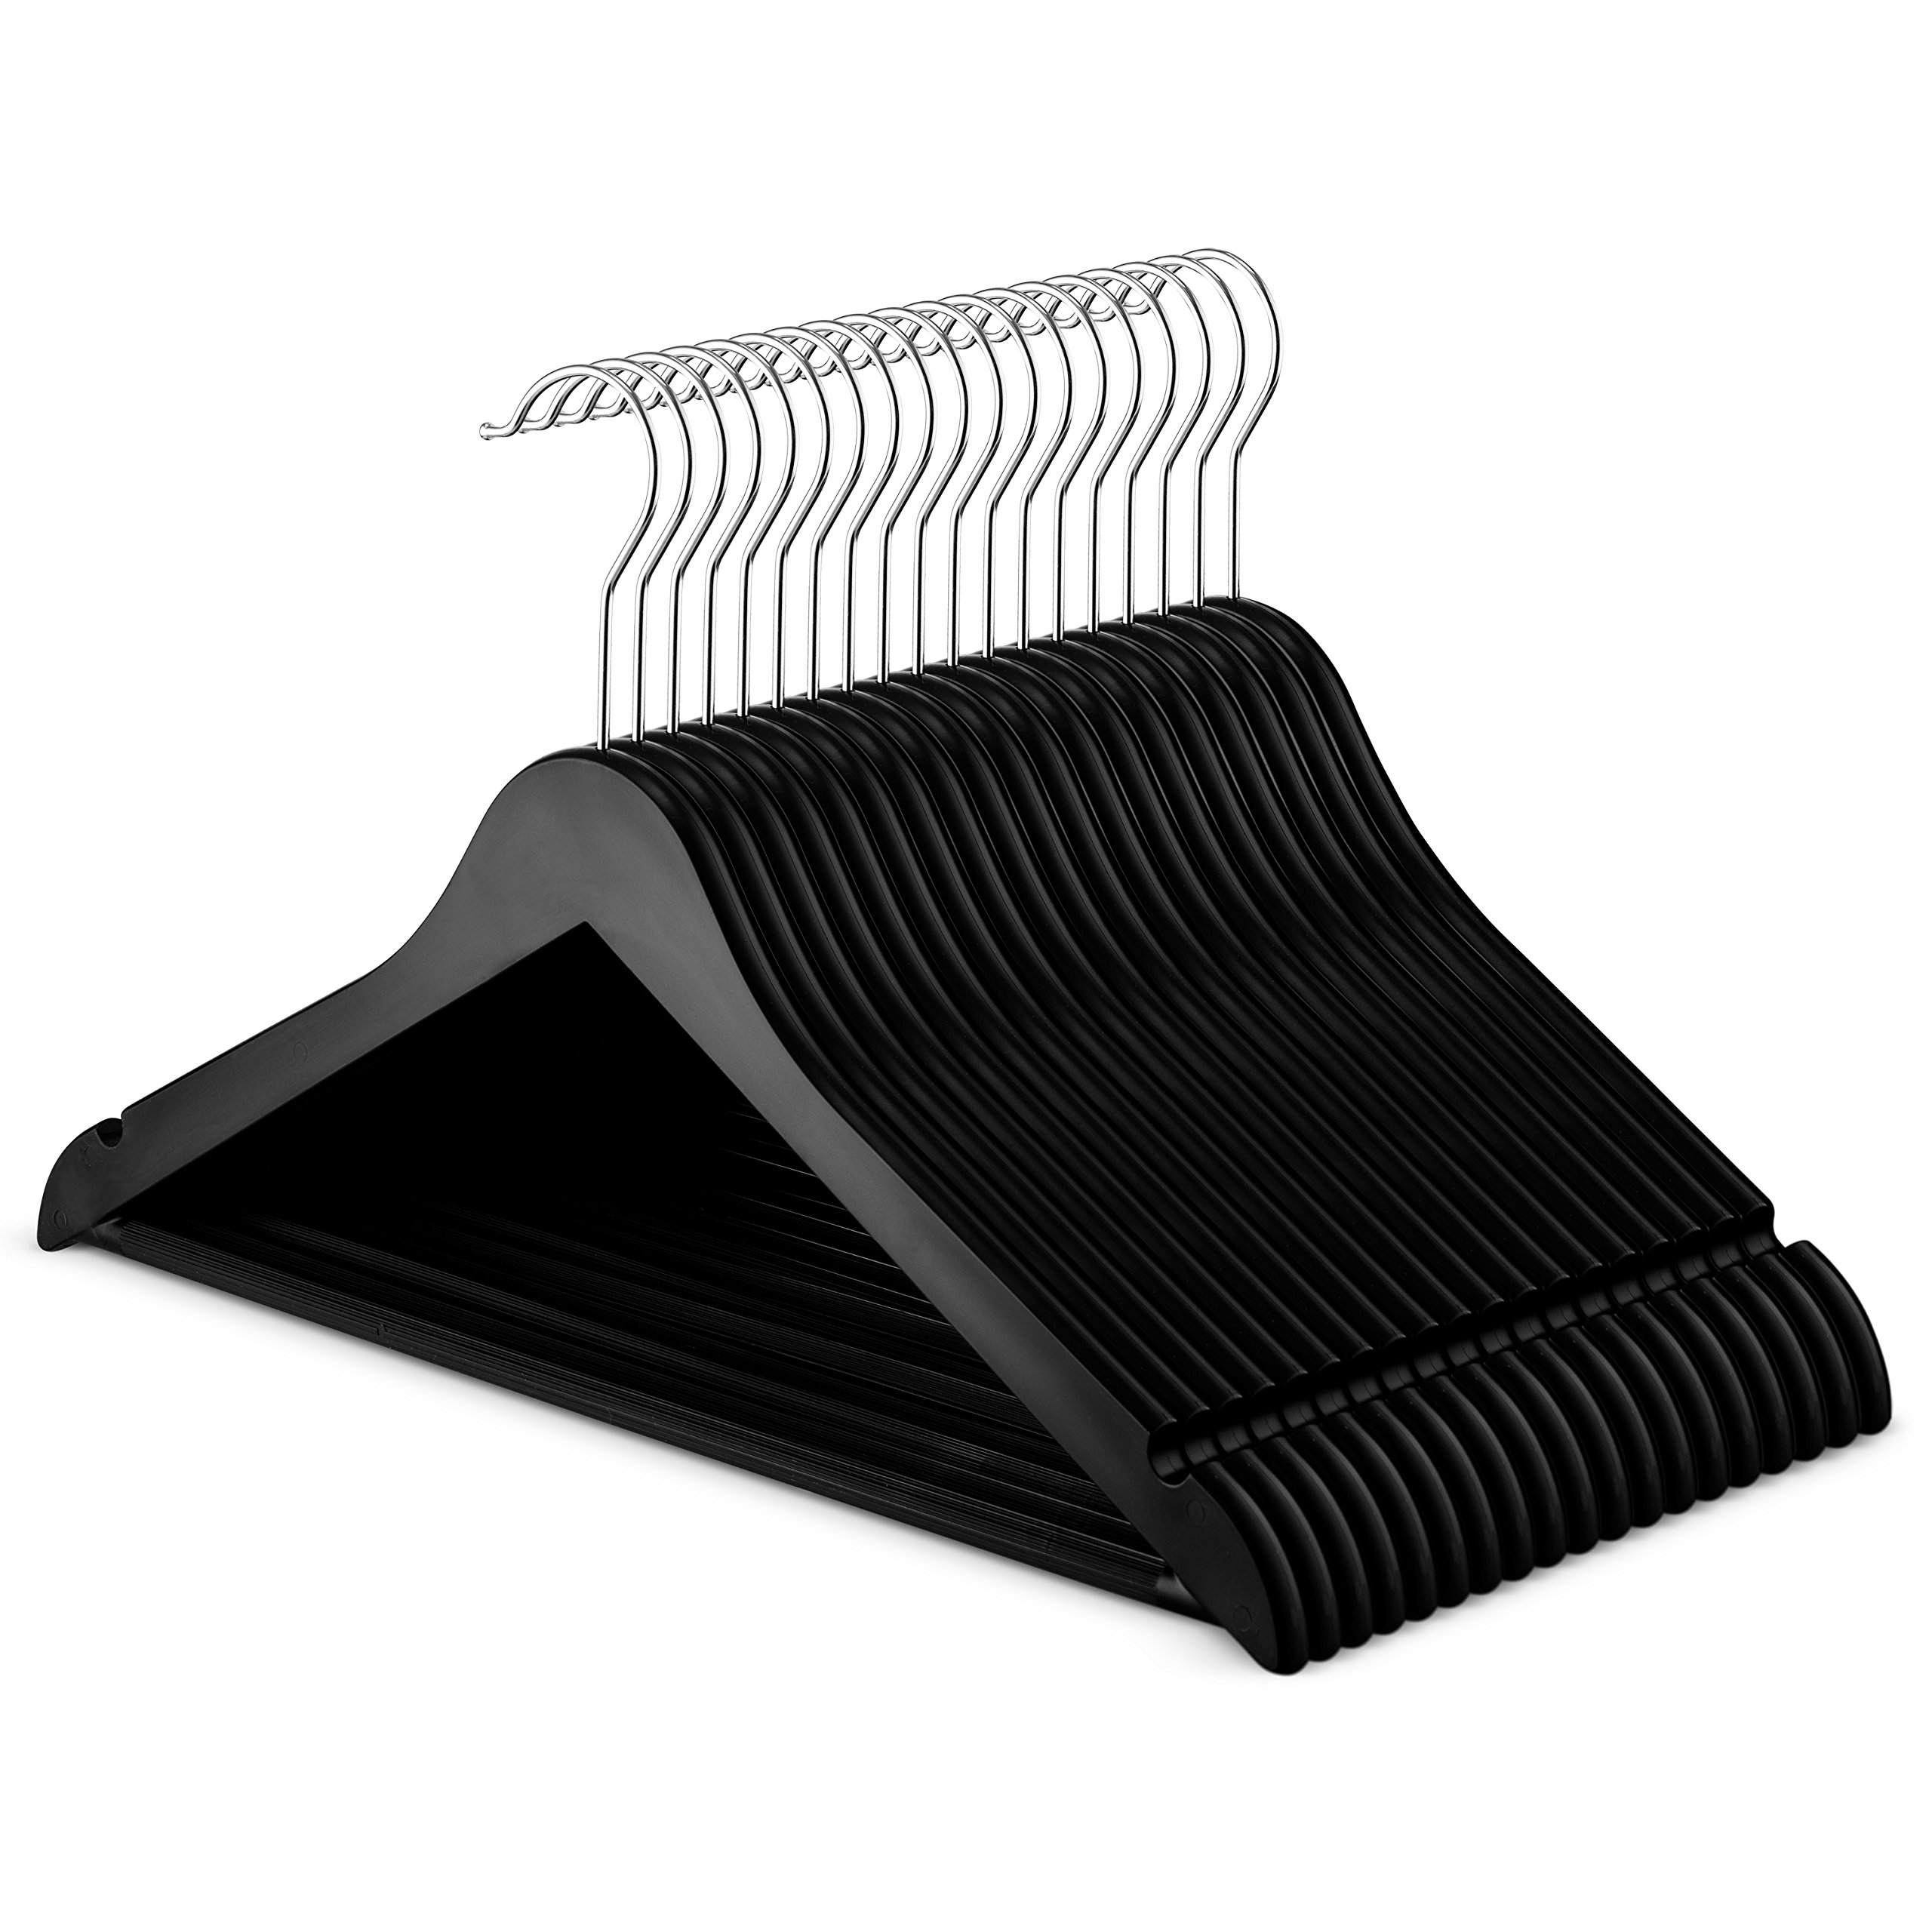 ZOBER Premium Quality Plastic Suit Hangers – (20-Pack) Black - with Slim Space Saving, 360 Degree Swivel Hook, Non-Slip Bar, Smooth Notches for Dress Clothes, Coats, Jacket, Pants,